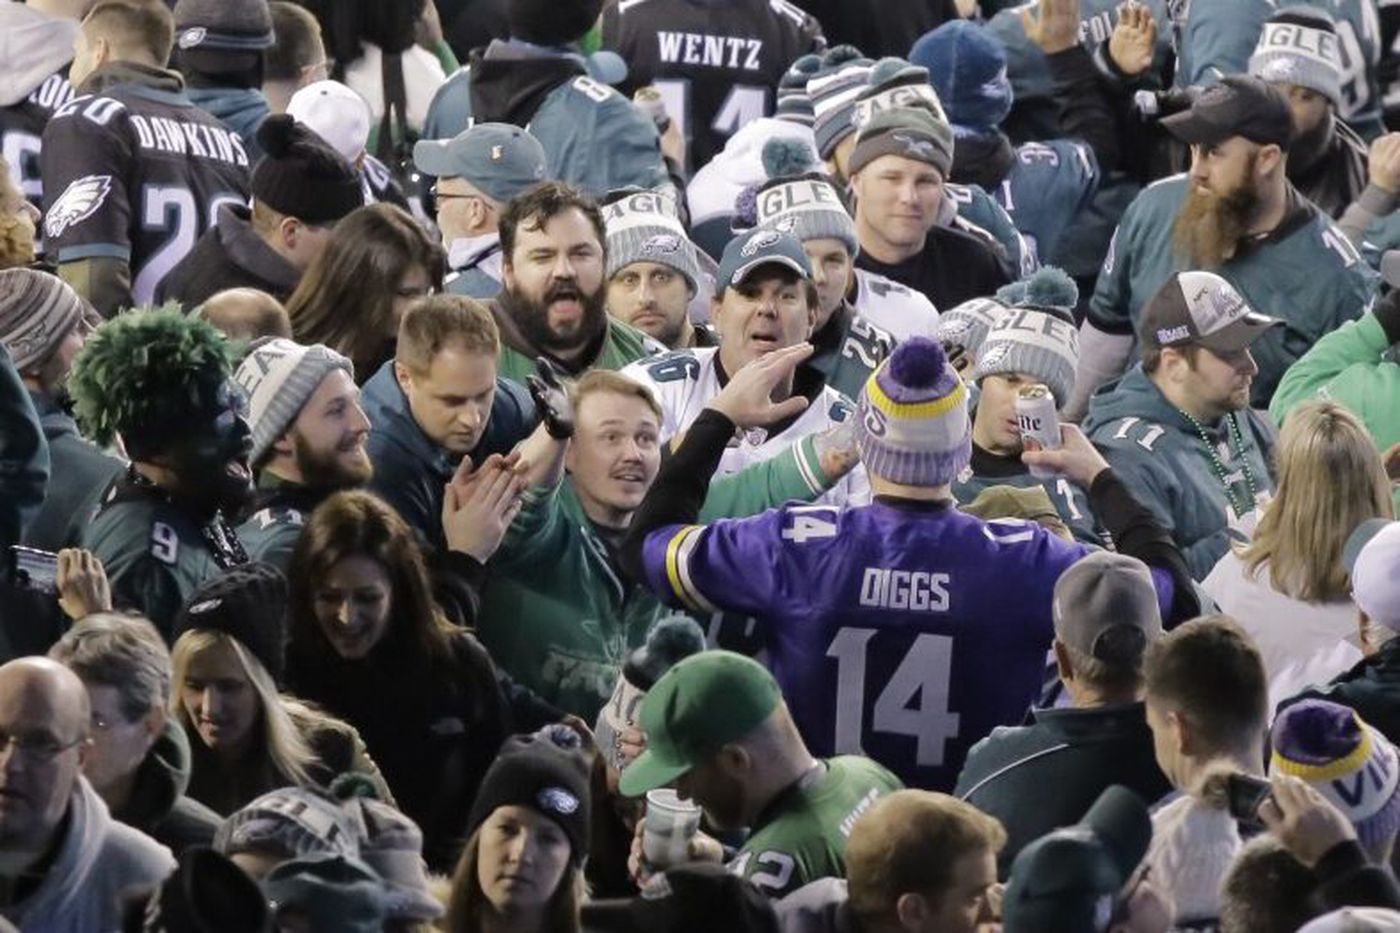 Vikings fan raising money for Eagles charity to welcome team to Minn. for Super Bowl